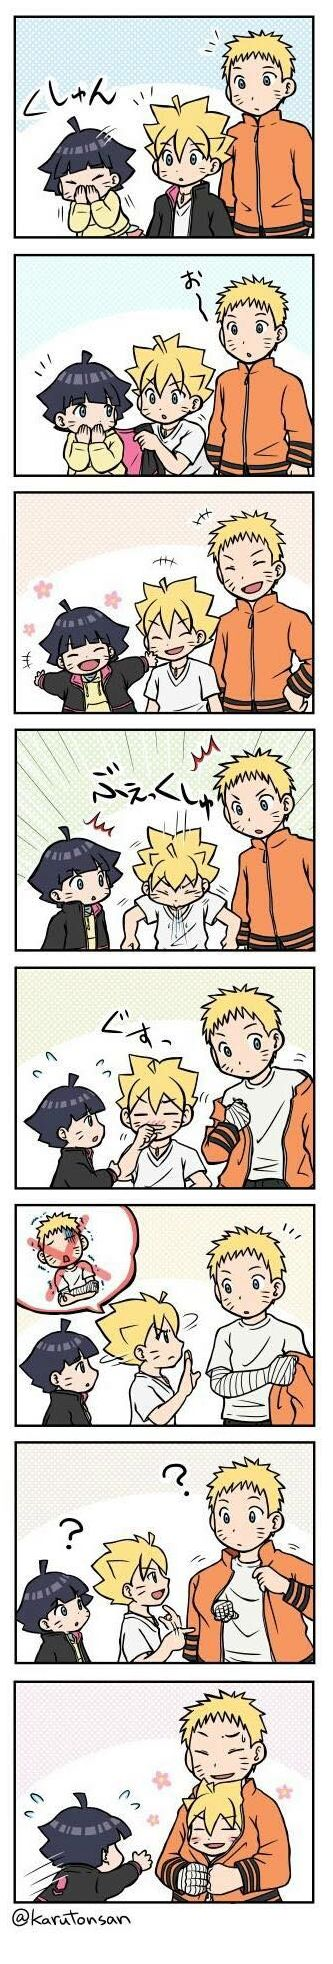 Kawaii Uzumaki family getting cold... Oh Boruto...